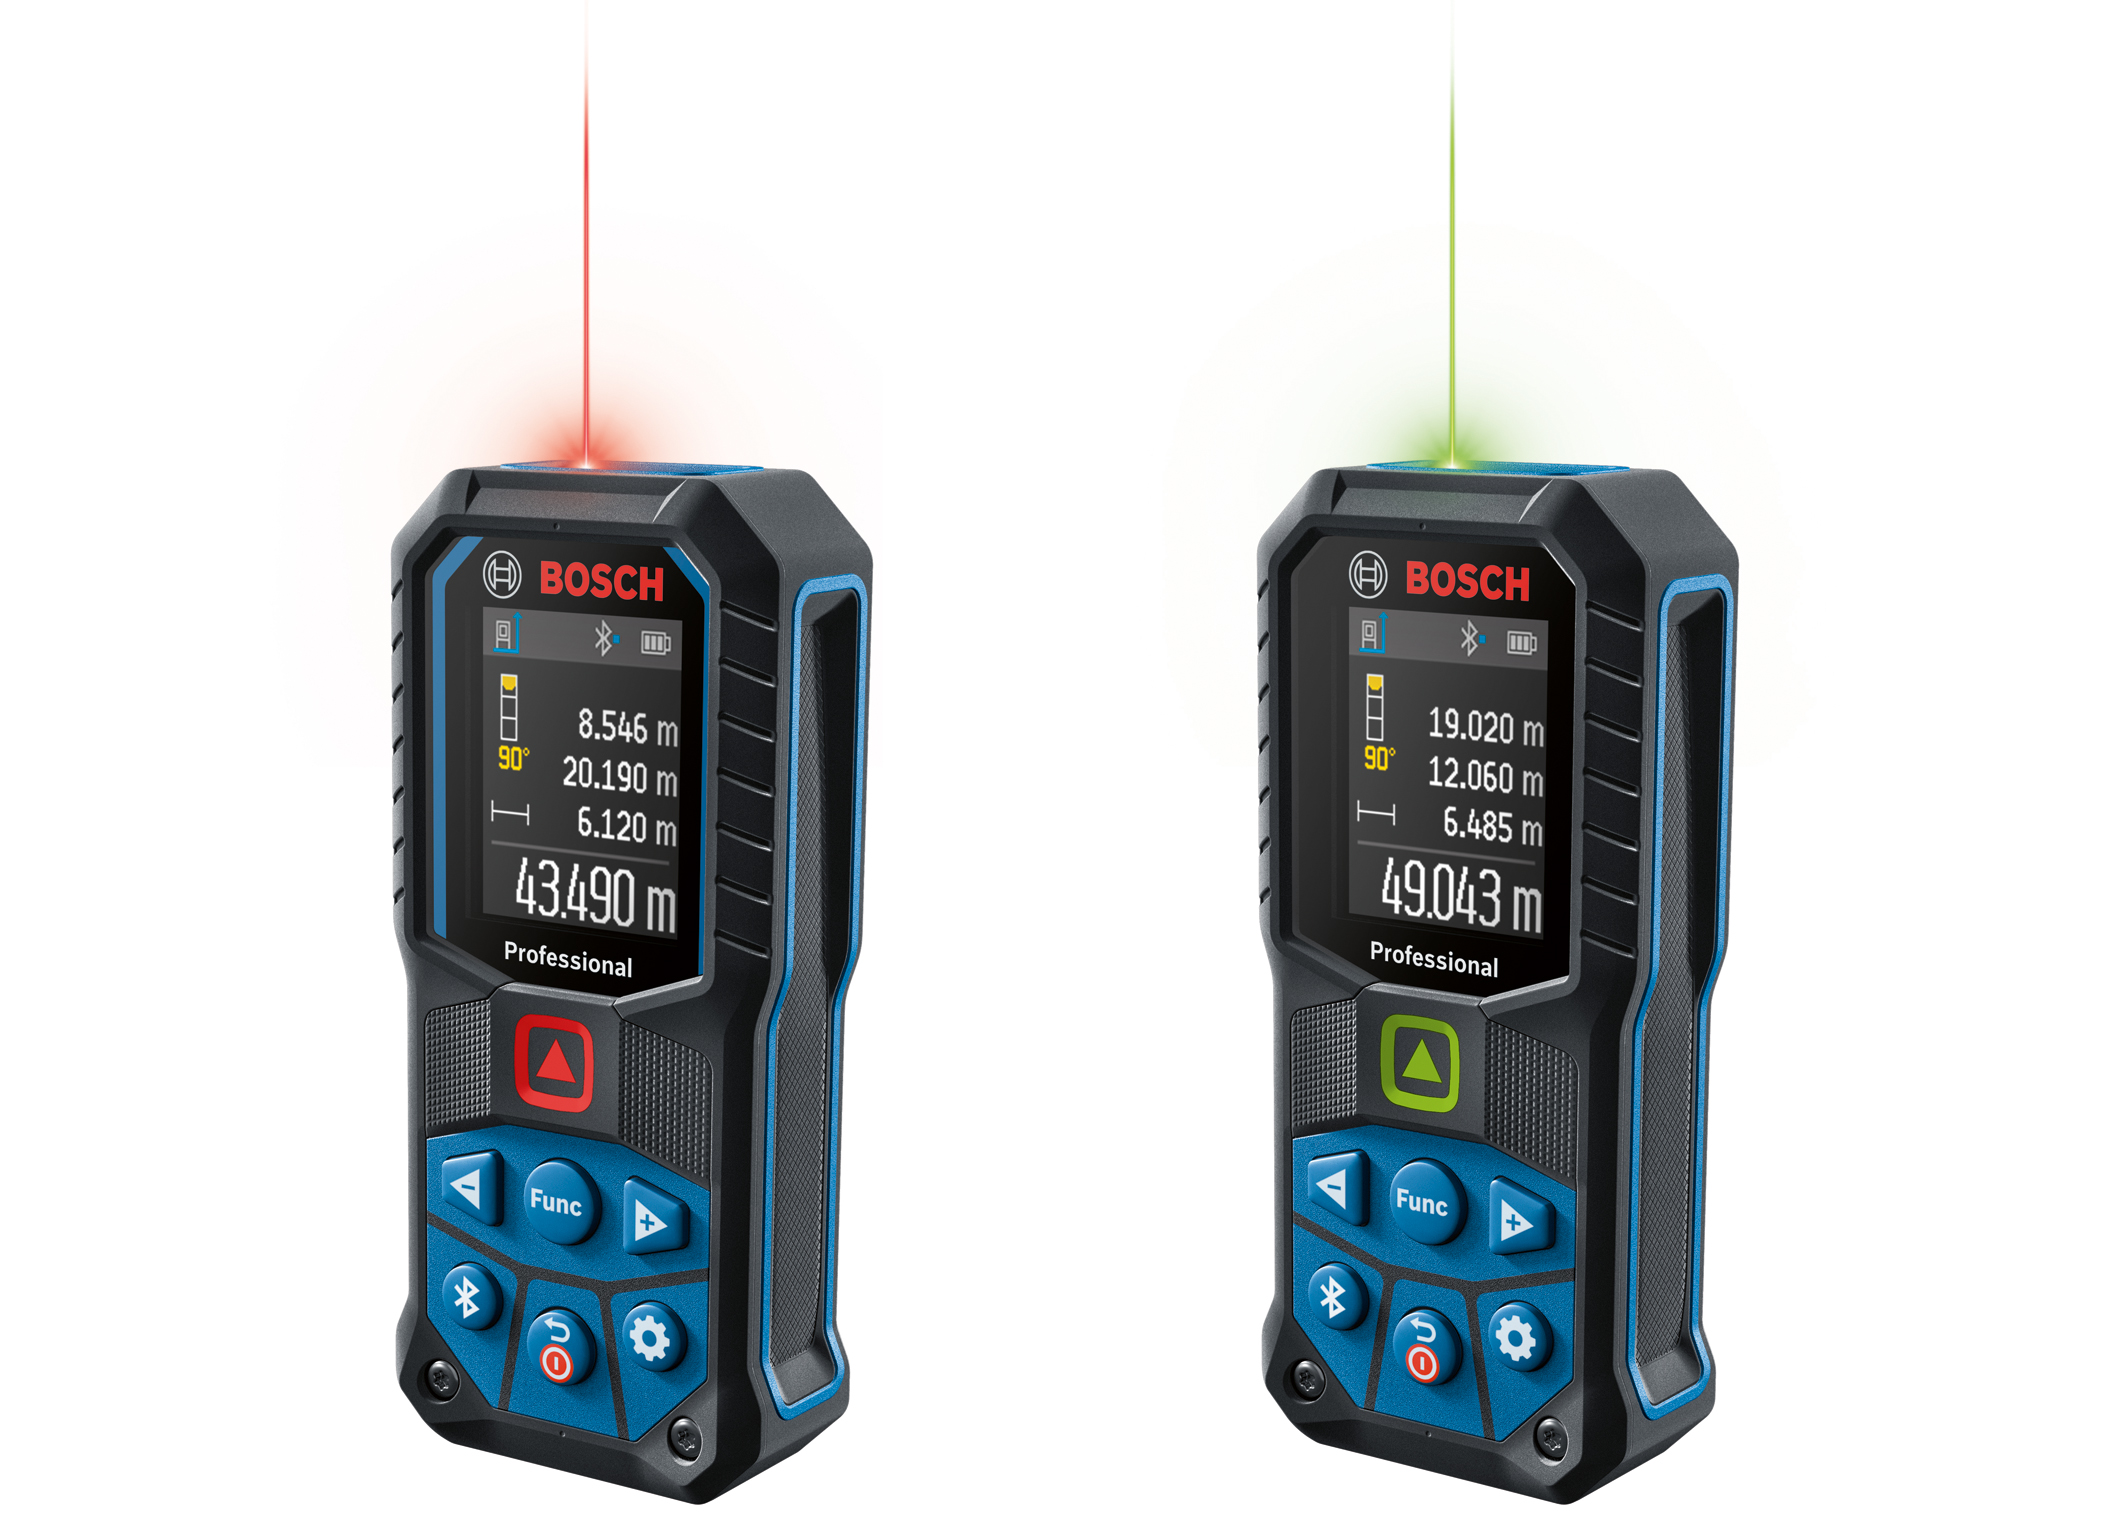 Accurate measuring, easy reading, wireless transfer: Robust laser measures from Bosch for Professionals